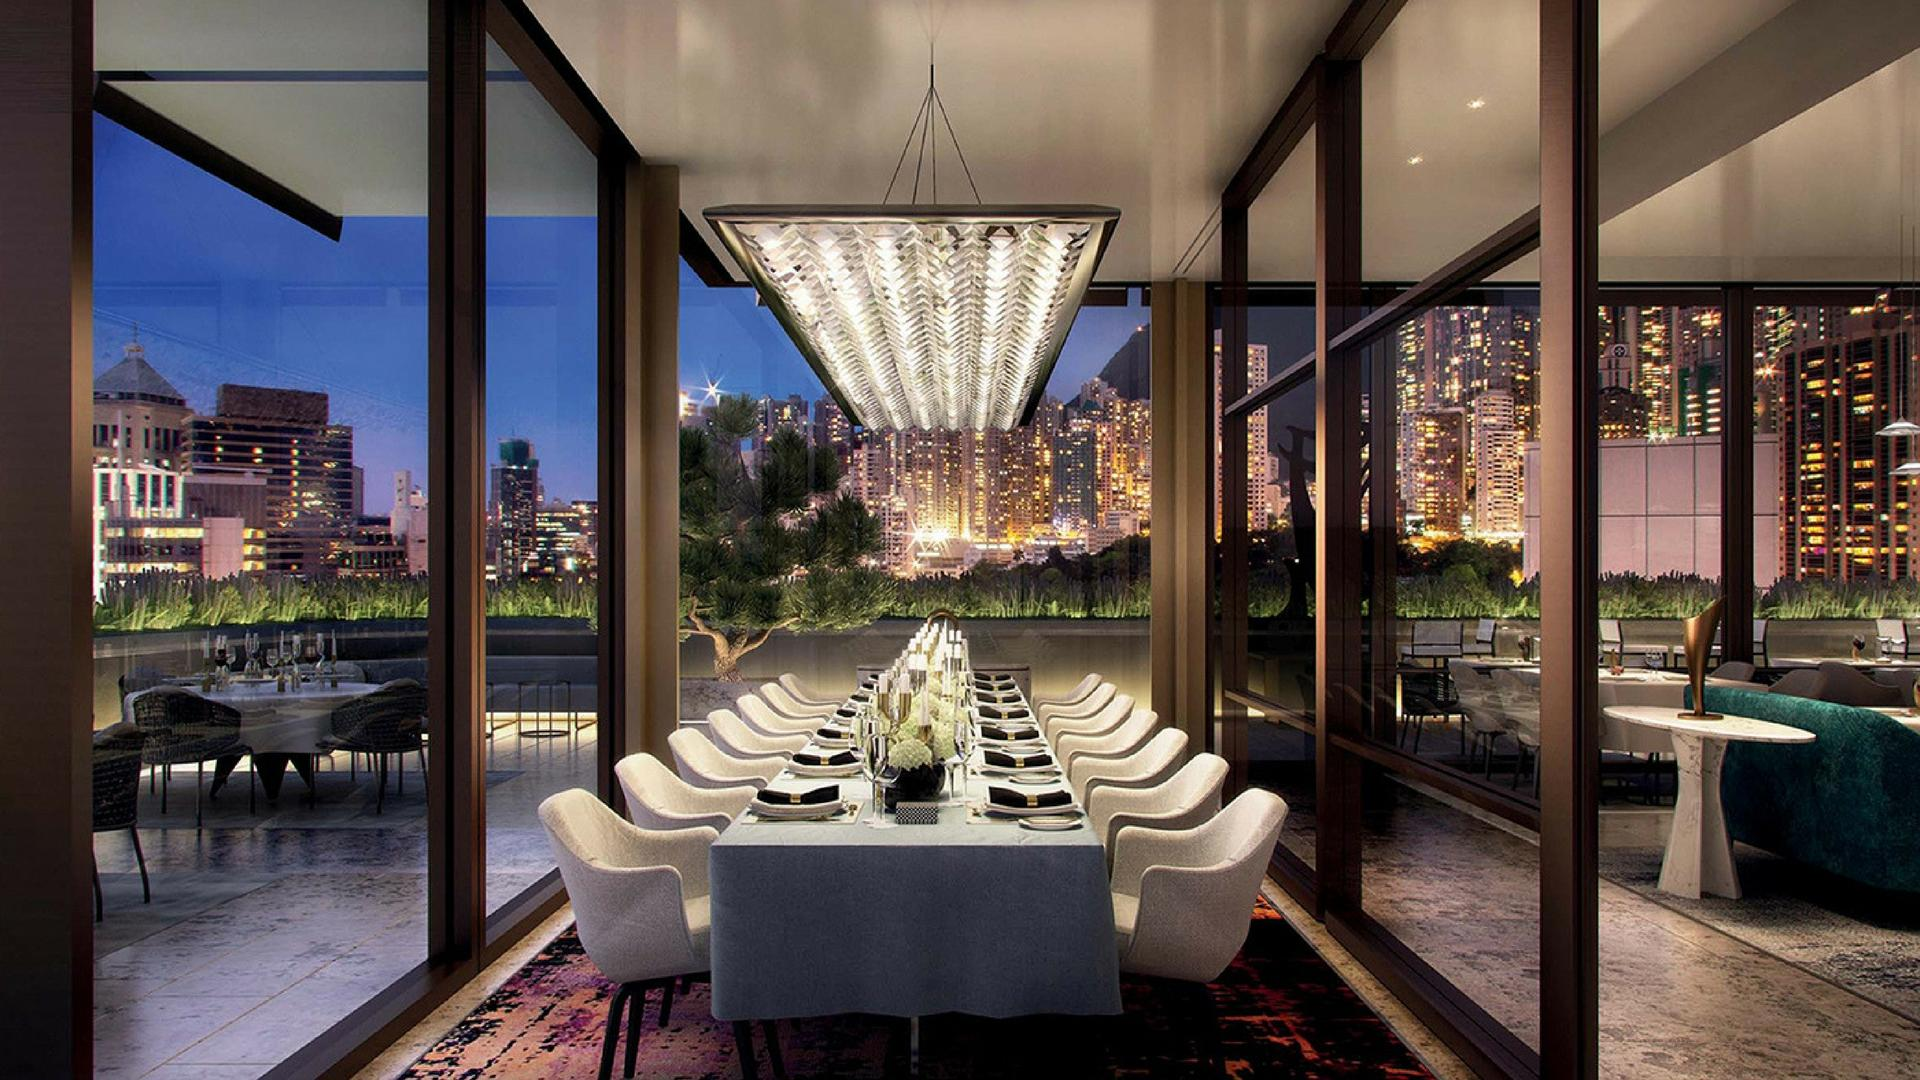 TheMurrayHongKong_Restaurant and Bar - The Aviary1